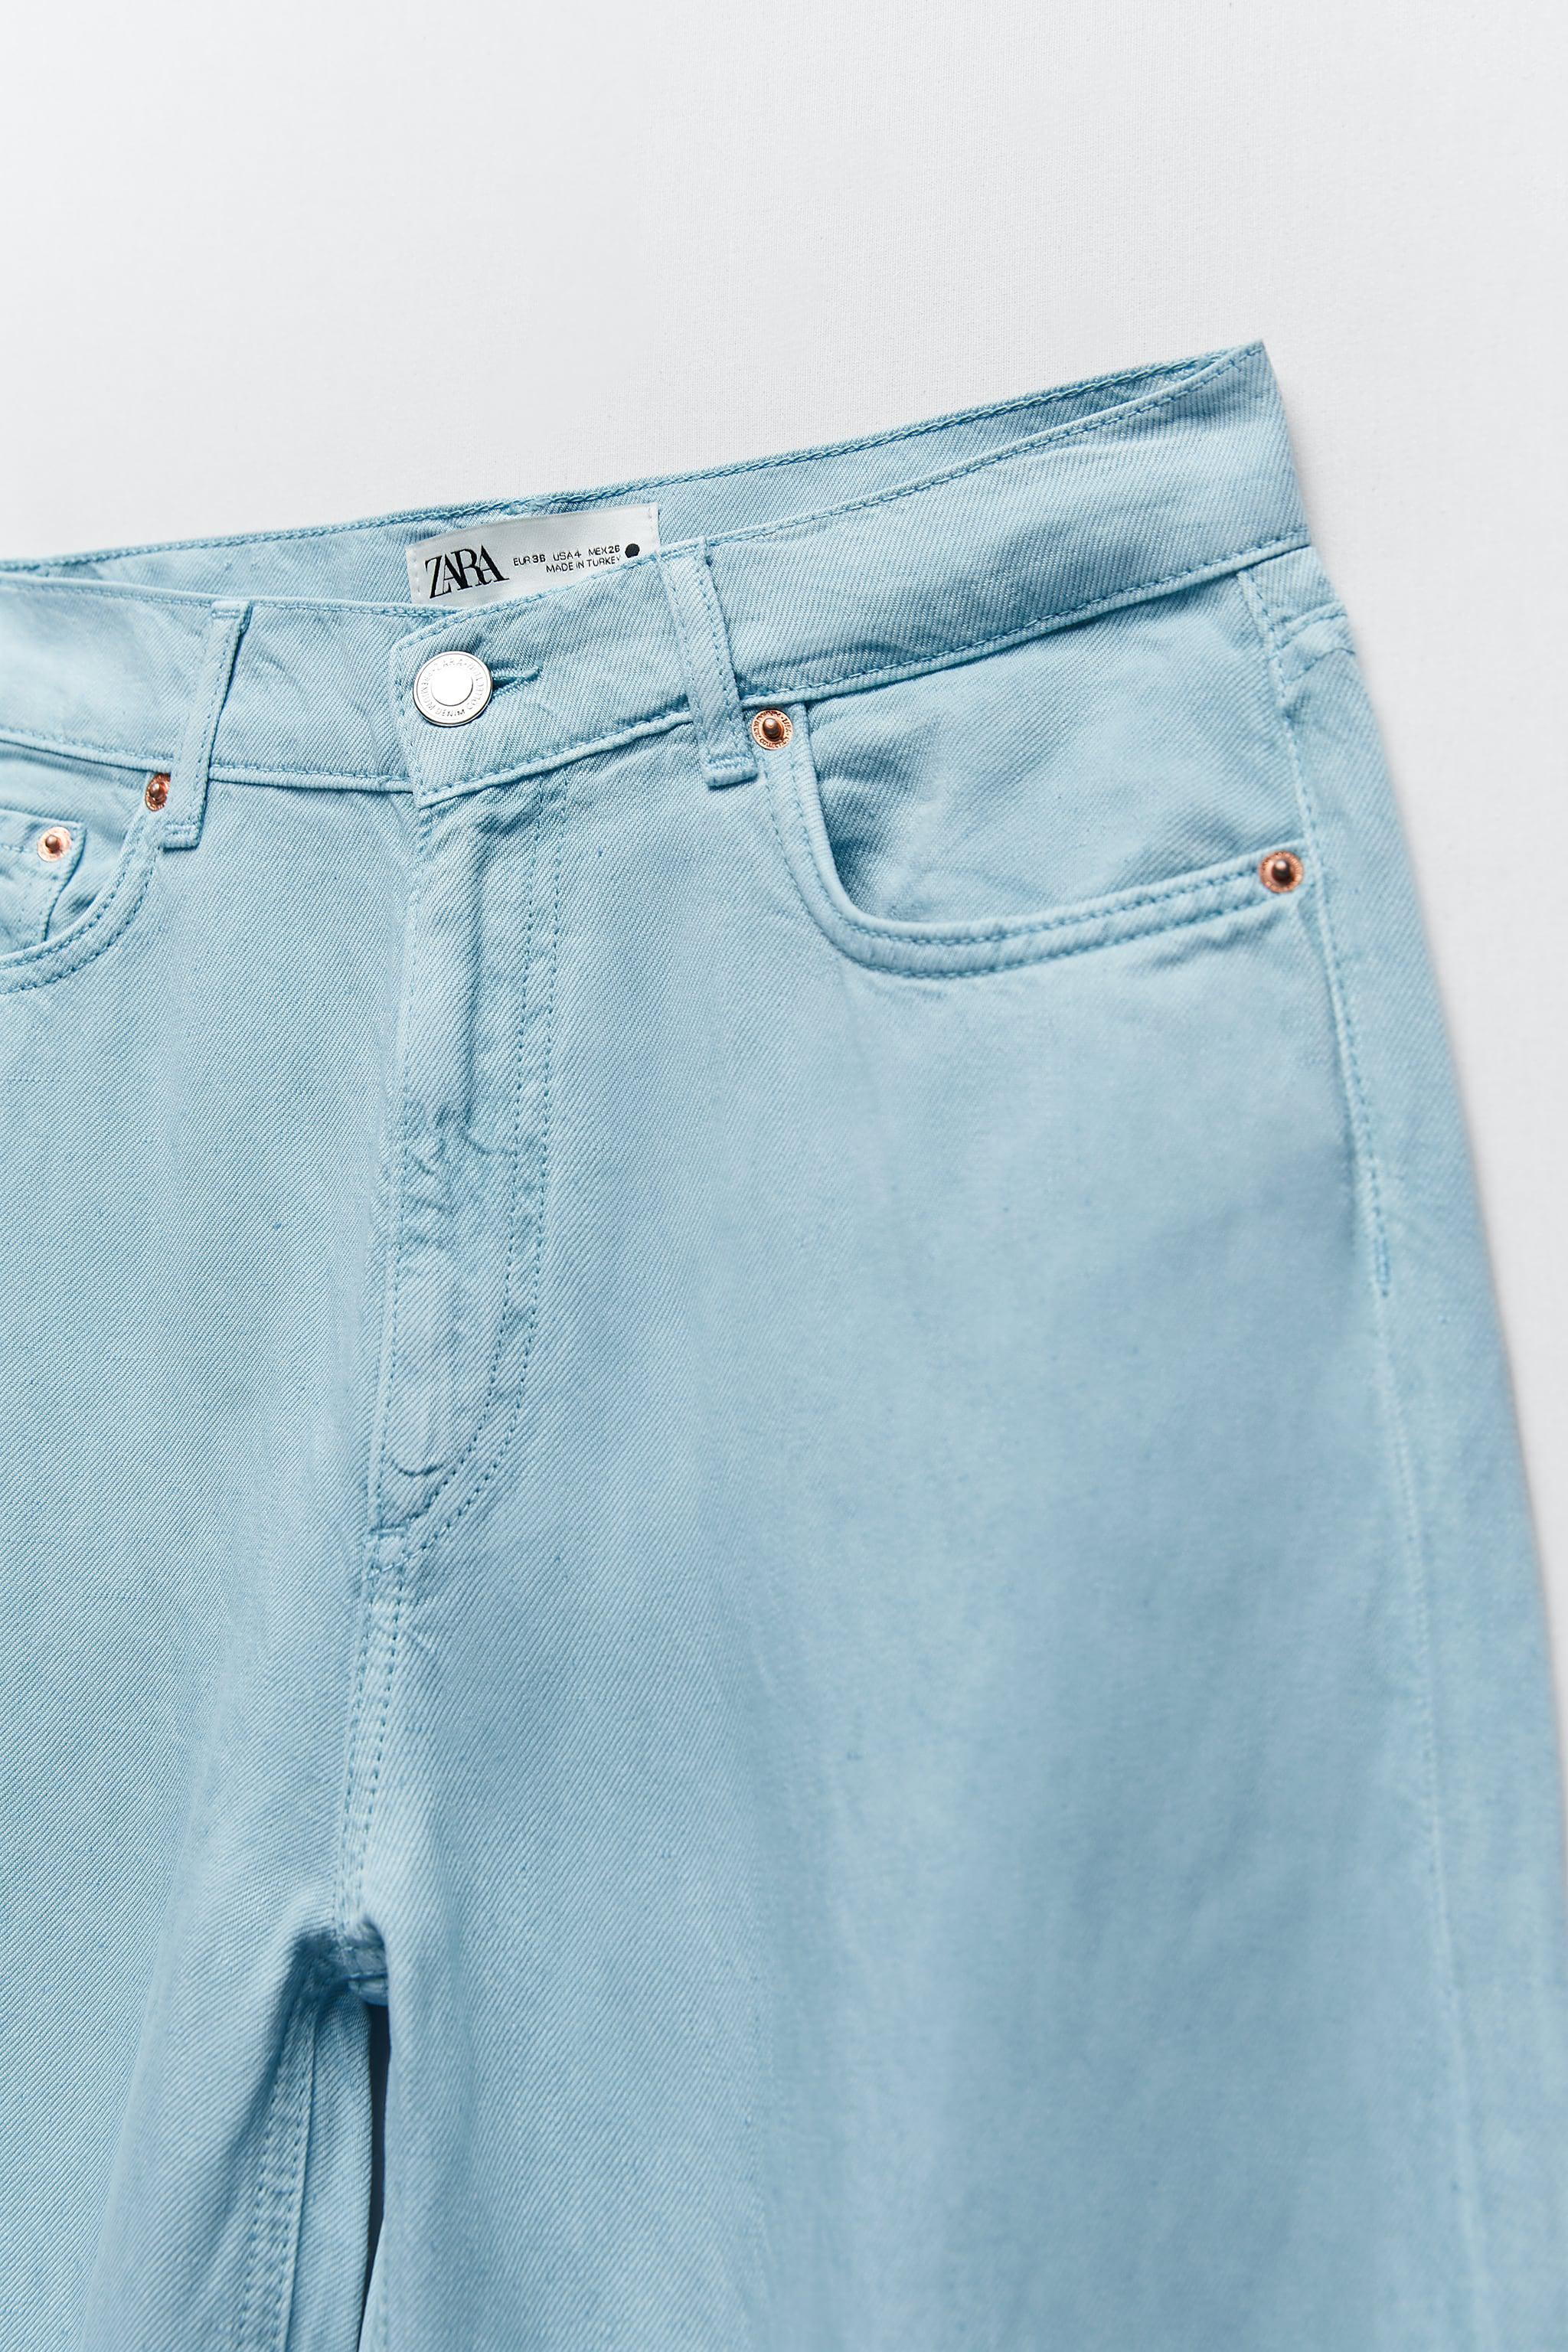 THE DITTA WIDE LEG ZW JEANS 3